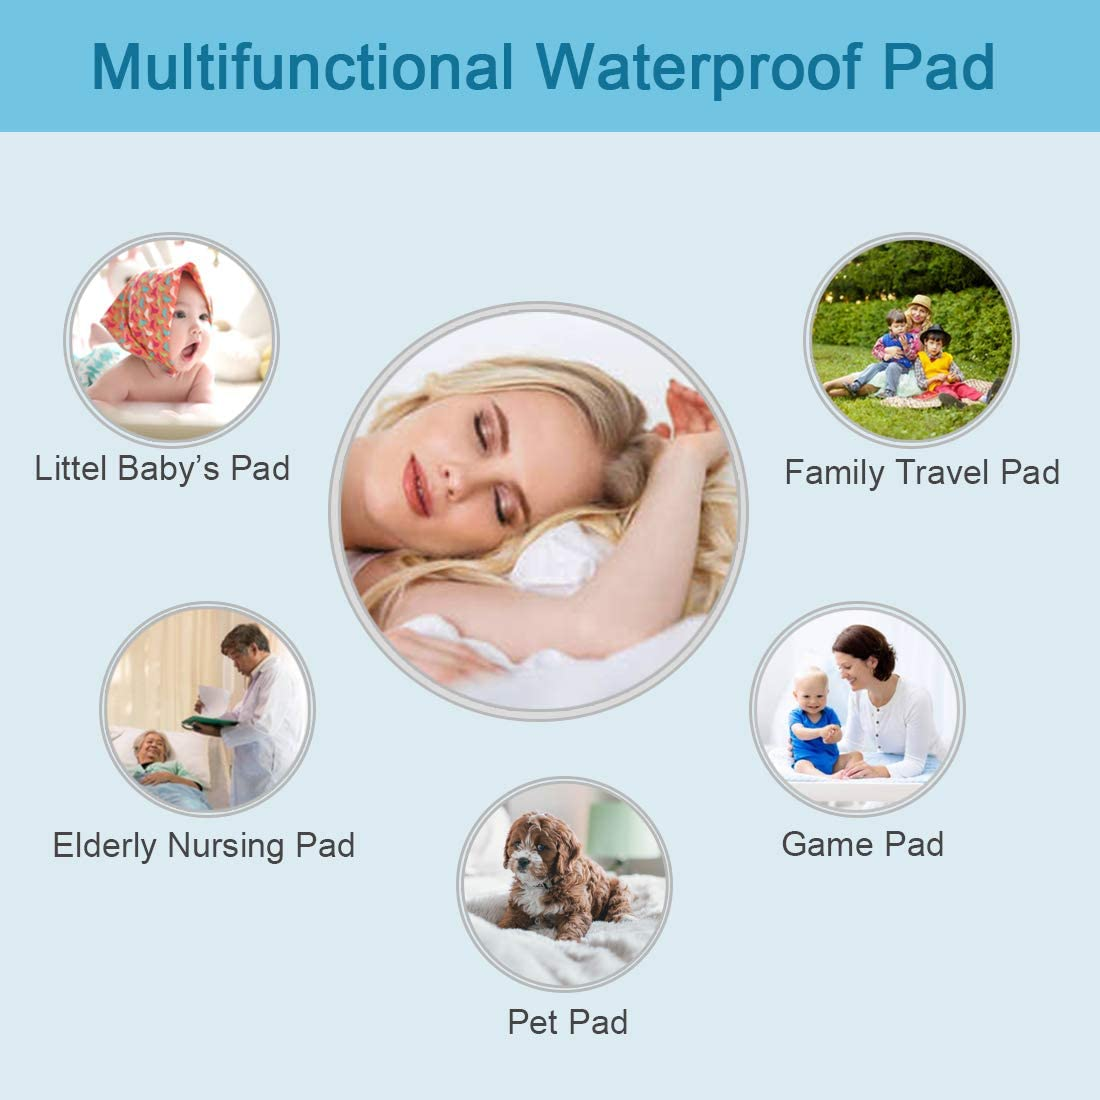 Reusable Incontinence Waterproof Bed Pads - Washable Absorbency Underpads Pad Mattress Protector Cover for Beds, Sofas and Chair(24 x 34 Inch): Health & Personal Care